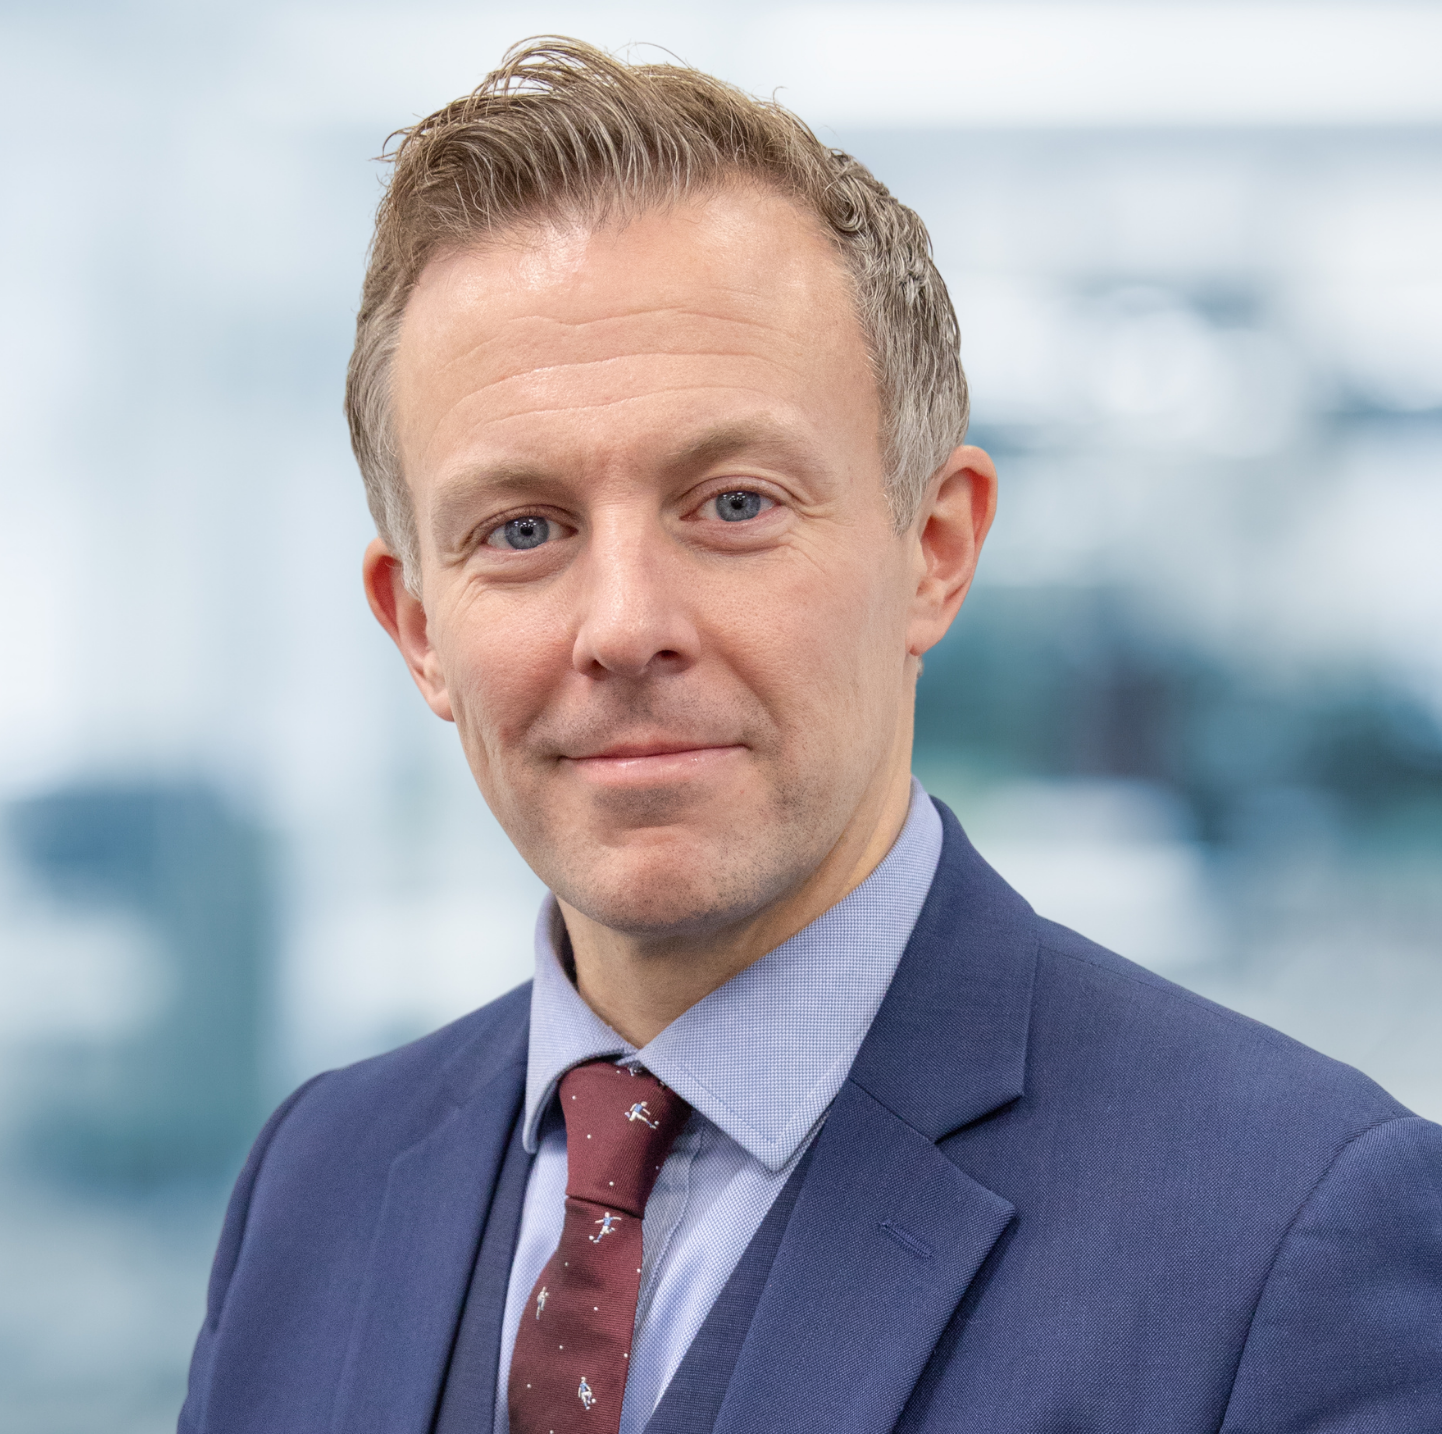 Andy Rowe IFA Harrow Chartered Financial Adviser Evolution Financial Services